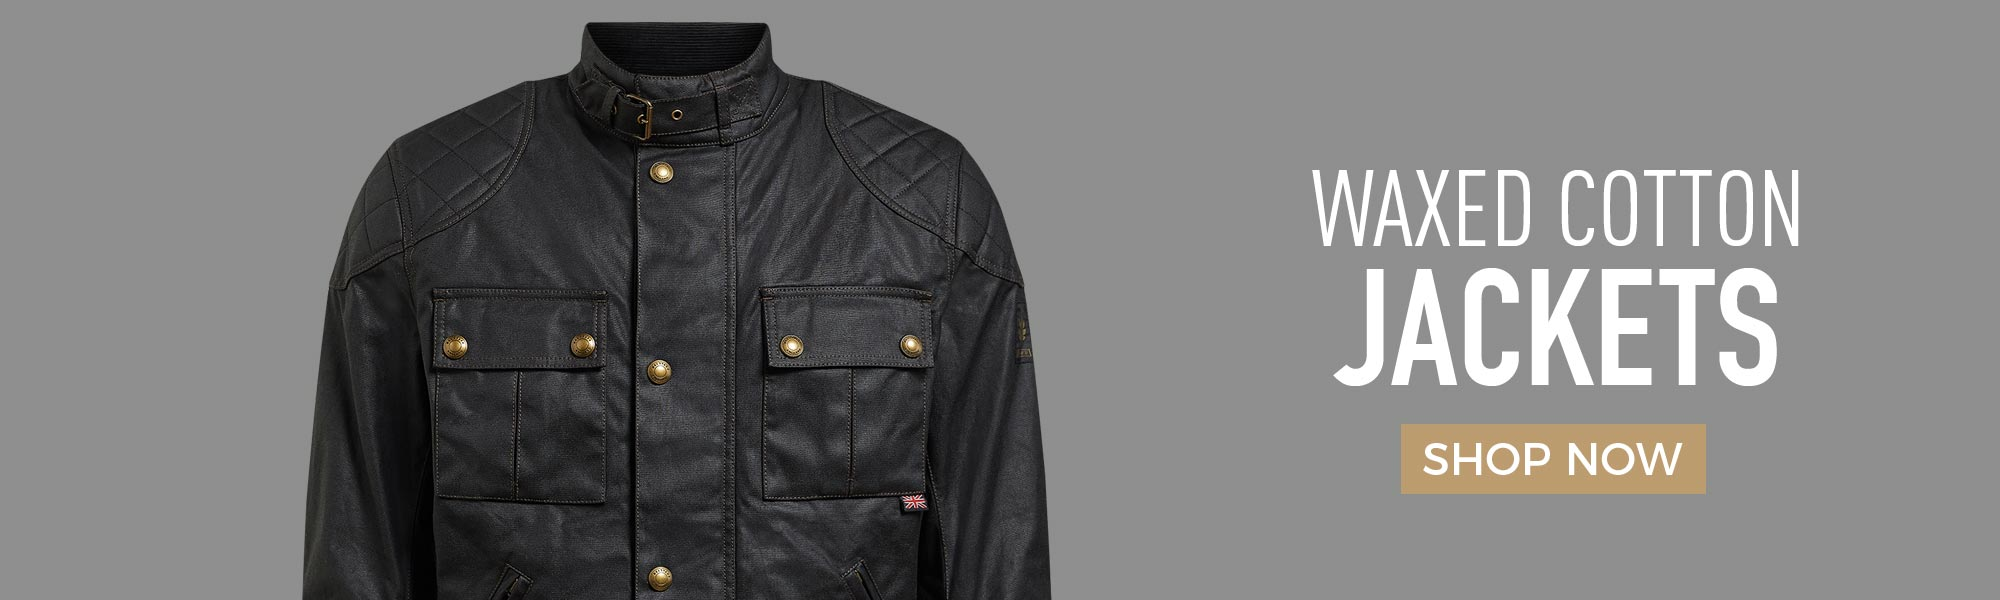 Waxed Cotton Jackets Driver